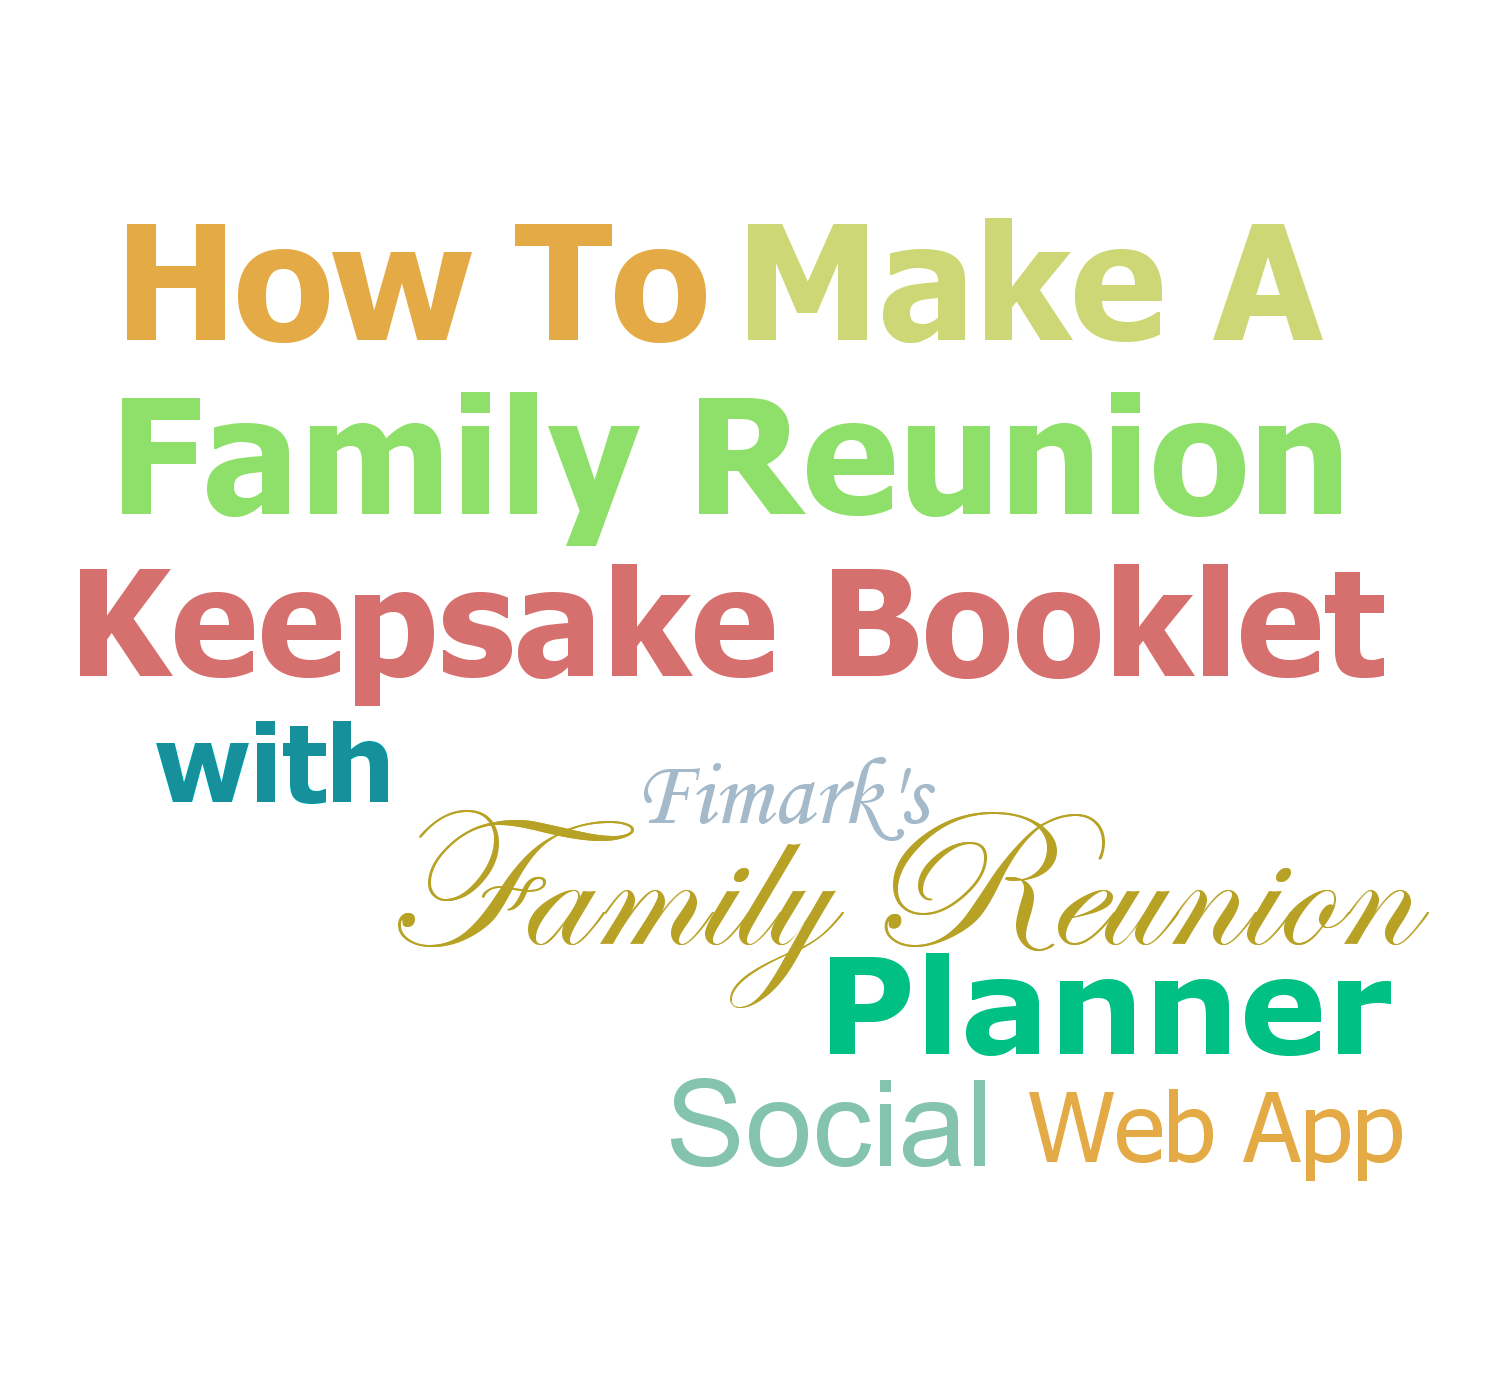 How To Make A Keepsake Reunion Booklet